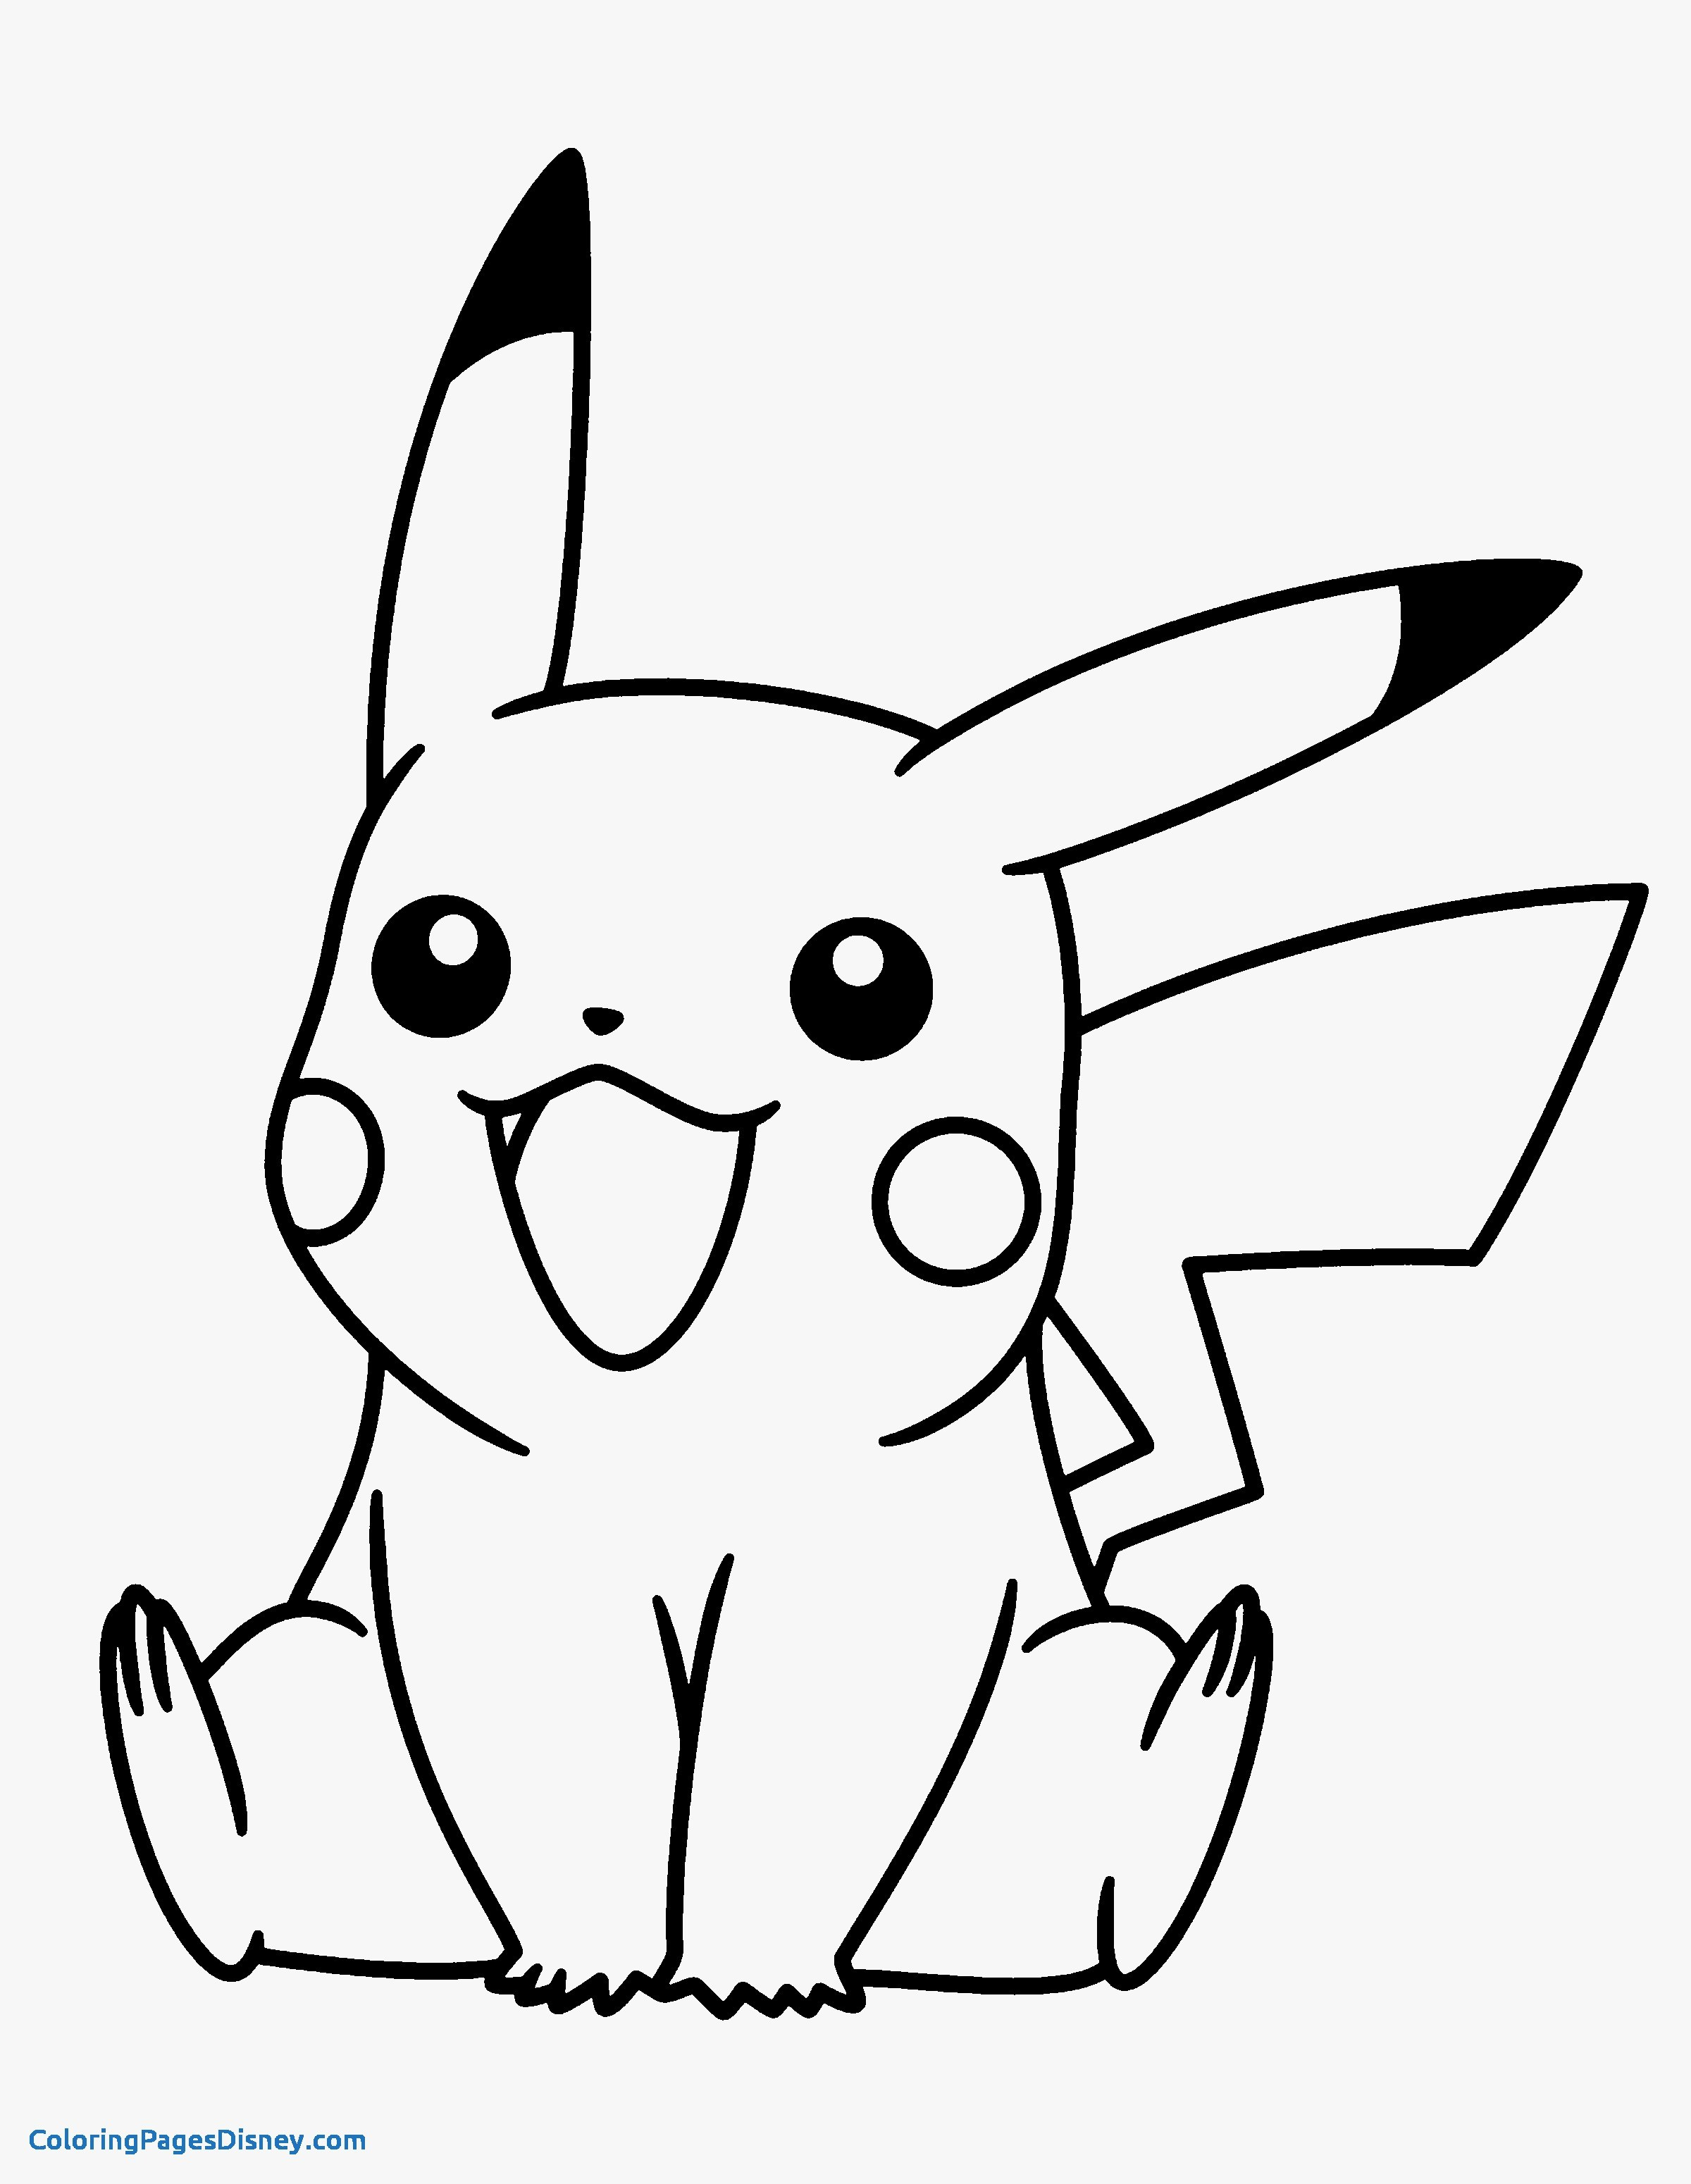 2400x3100 Coloring Pages Pikachu Luxury Pikachu Pokemon Coloring Pagesadult